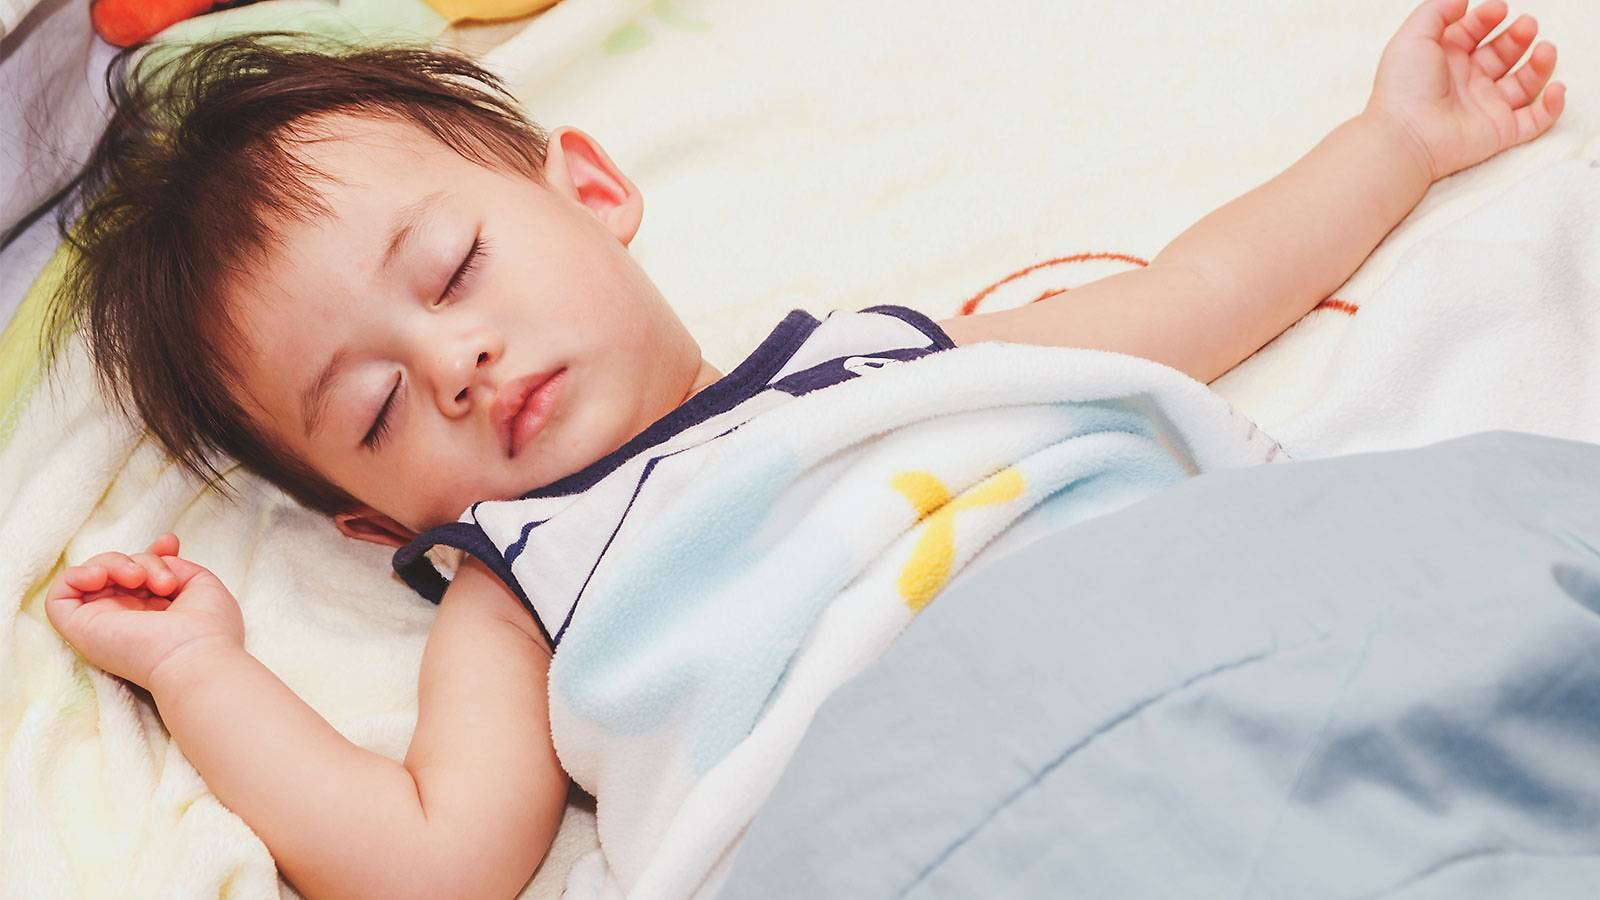 Tots-8-simple-rules-to-get-junior-to-sleep-alone-MAIN